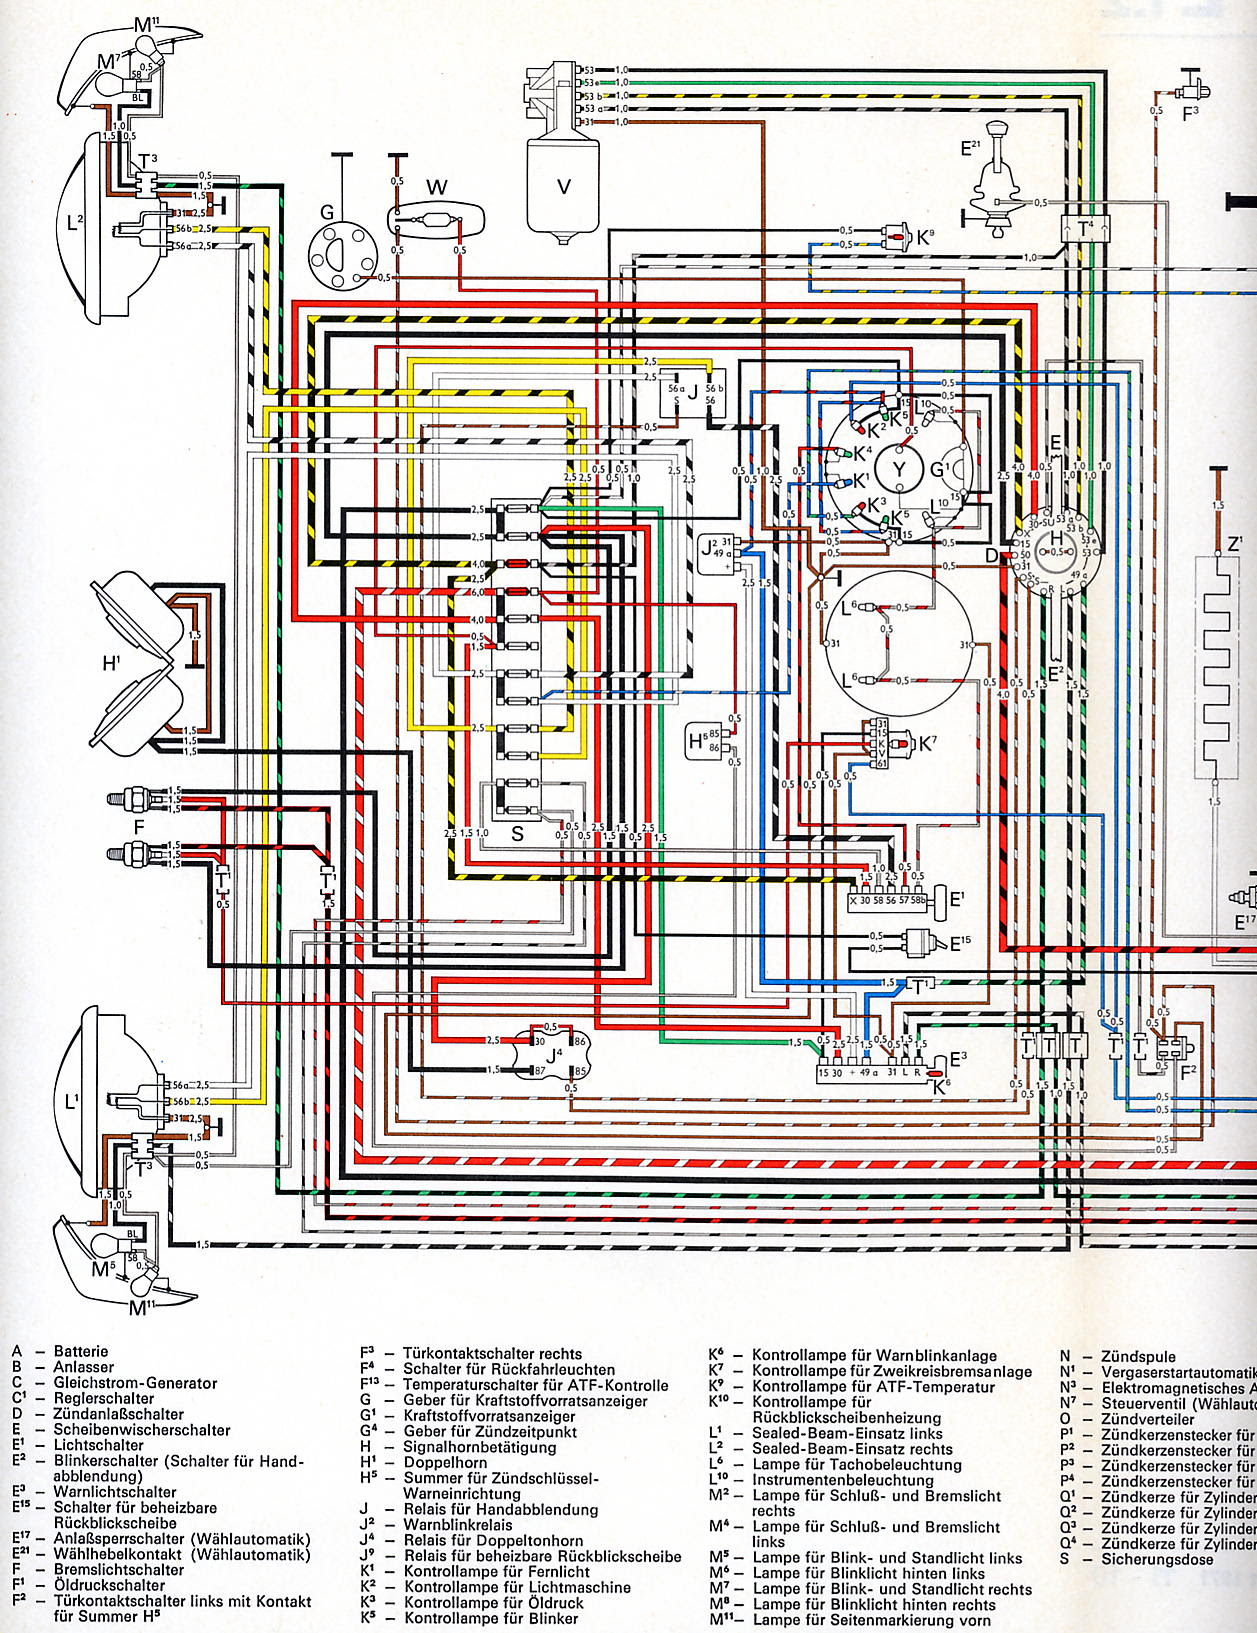 Diagram Wiring Diagram Service Audi A3 8p Full Version Hd Quality A3 8p Realautocars Histoweb Fr